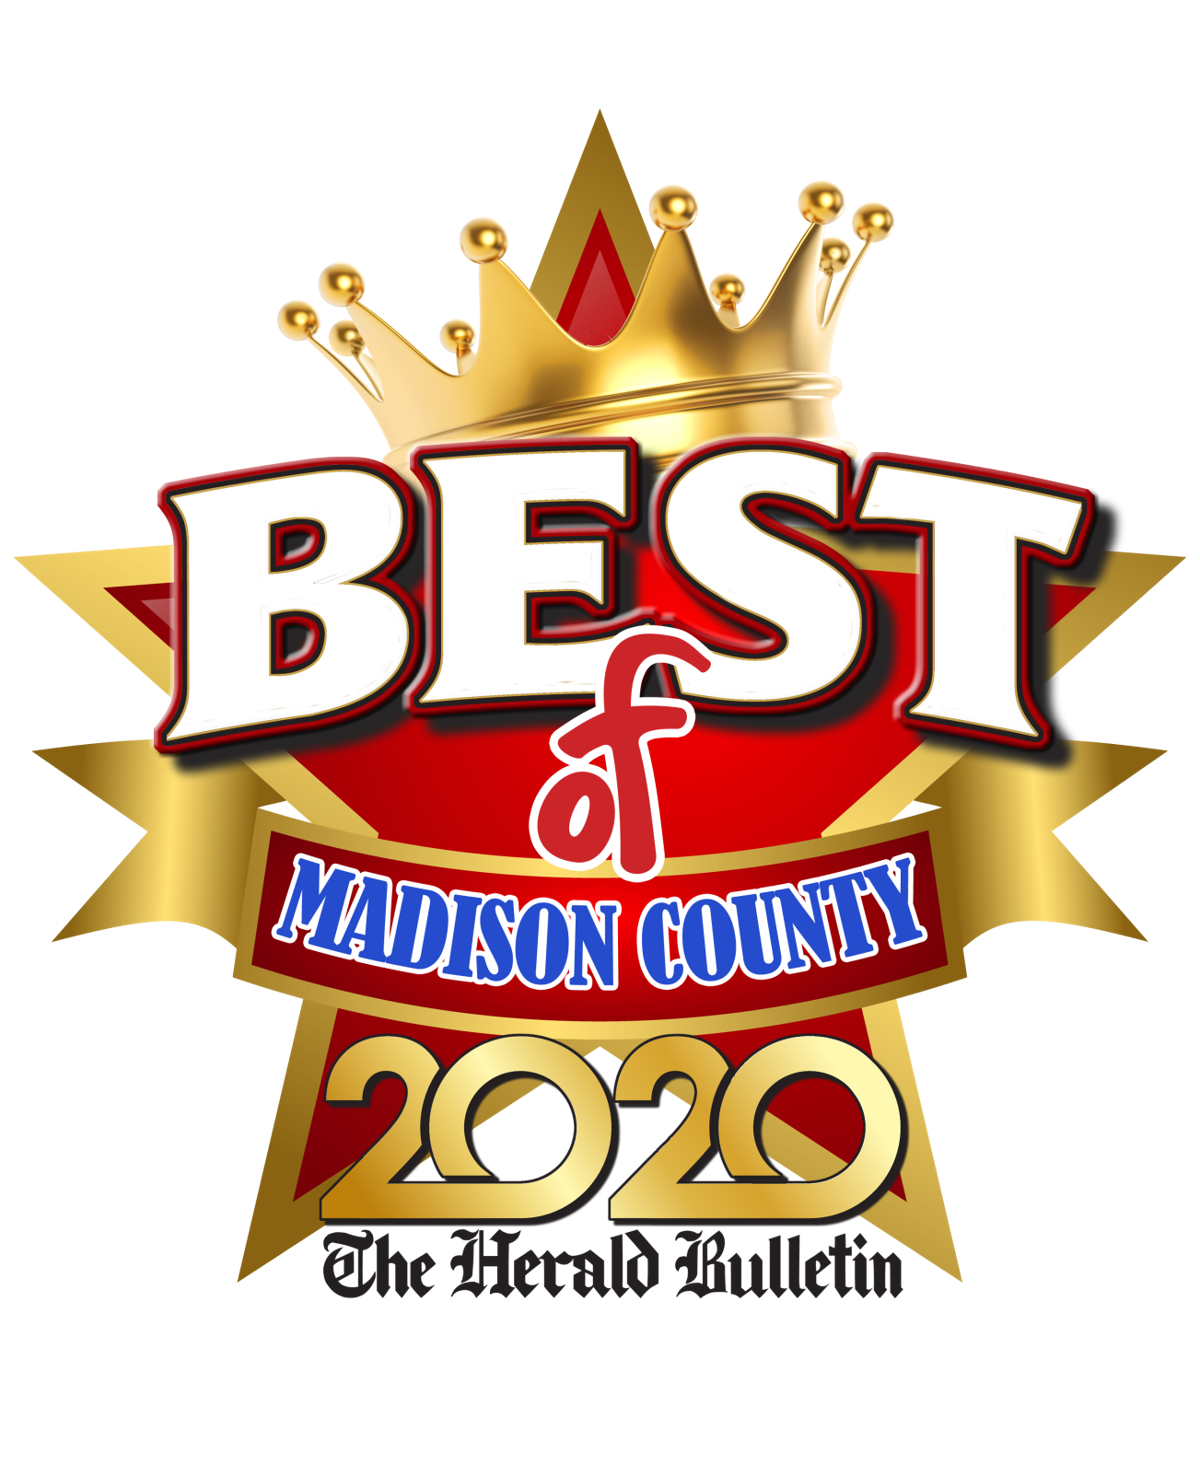 Best of Madison County png logo